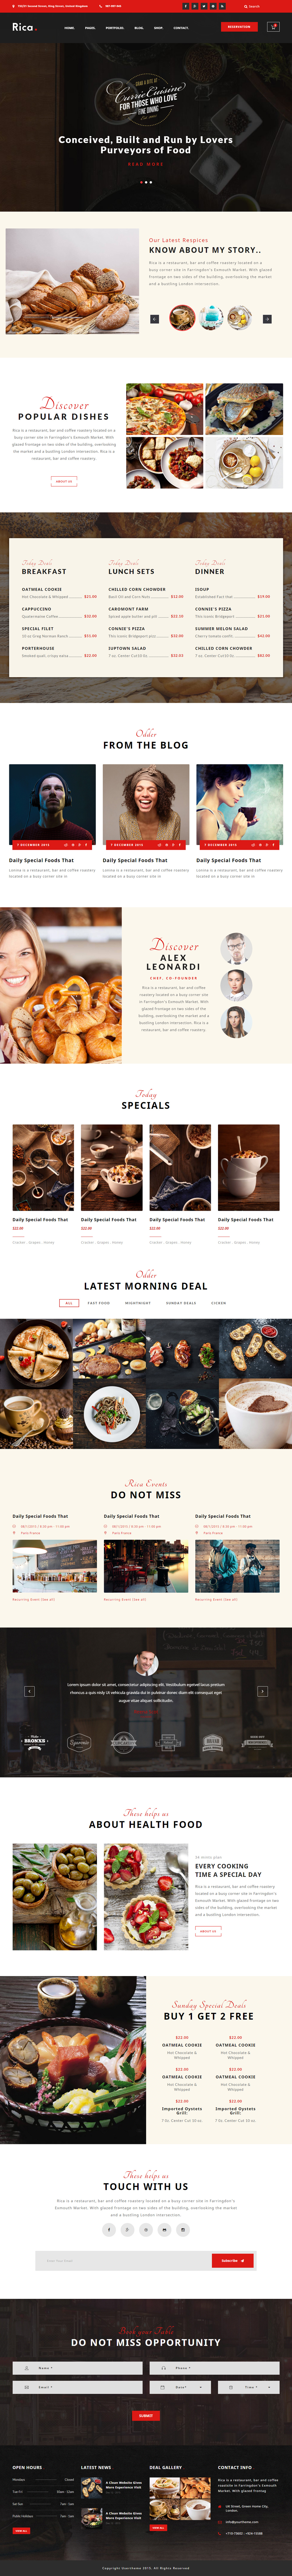 10+ Best HTML5 Bakery Website Templates in 2017 - Responsive Miracle